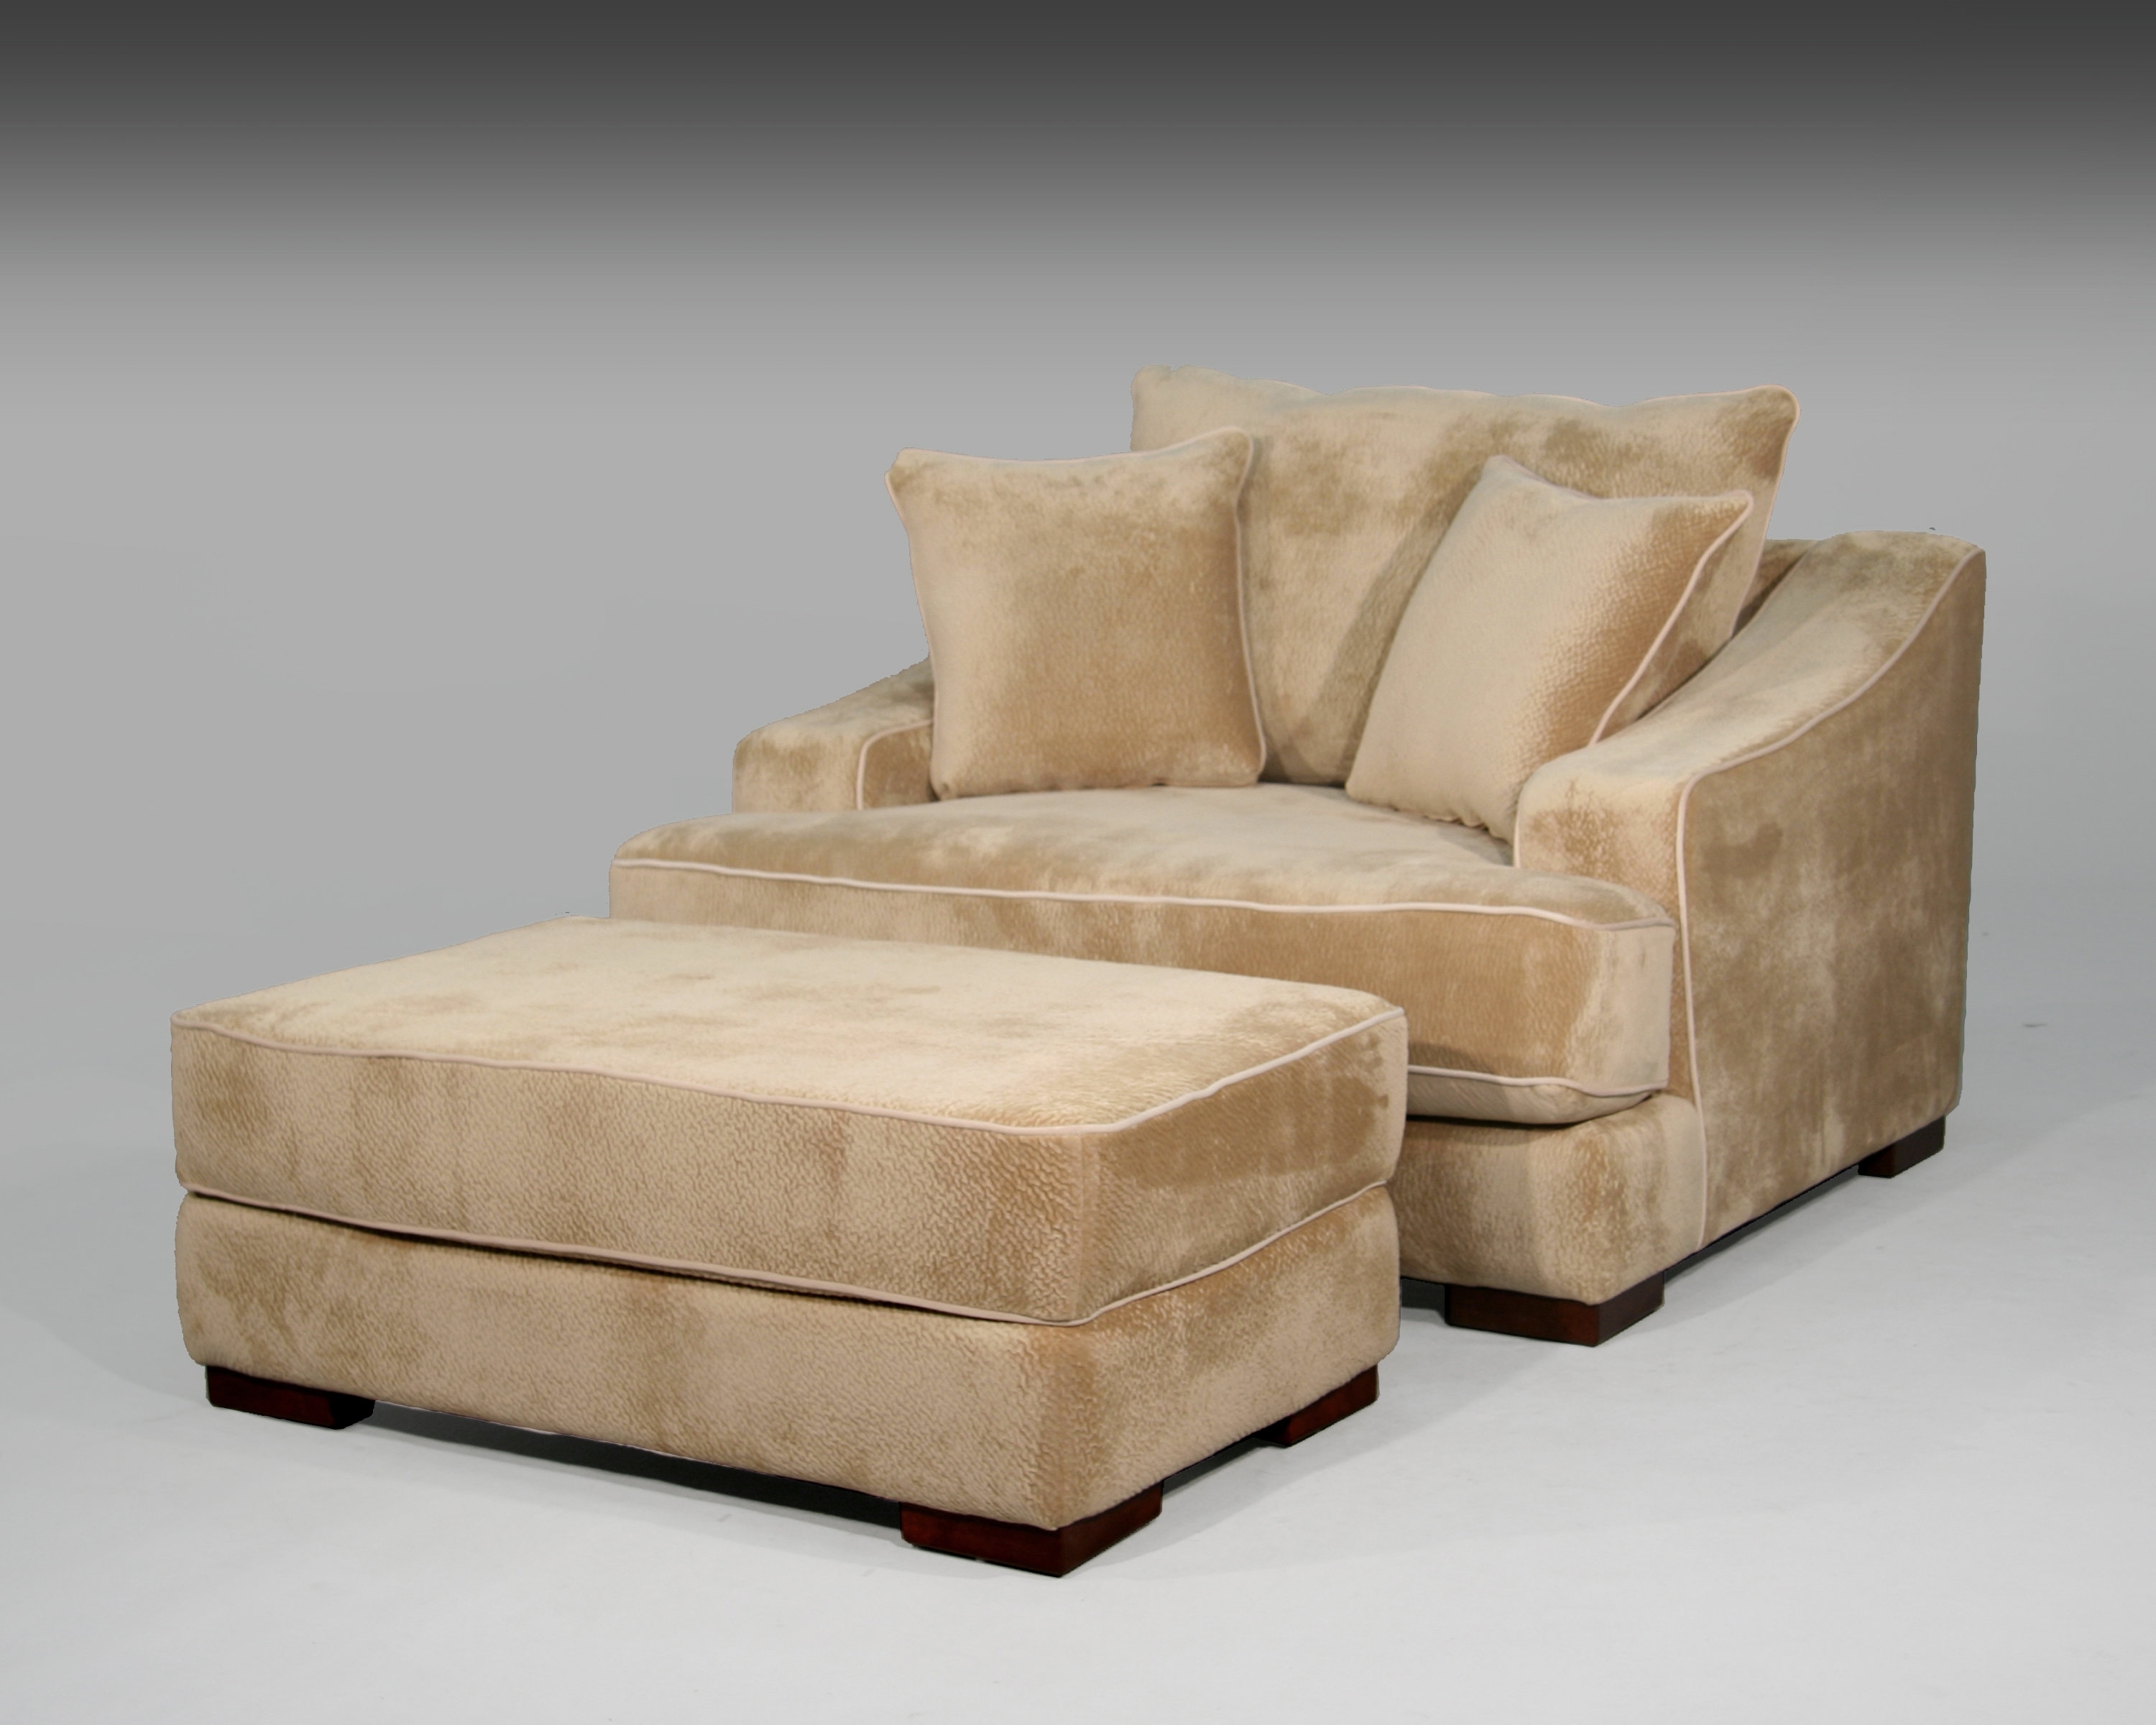 2017 Chair And A Half And Ottoman (View 8 of 15)